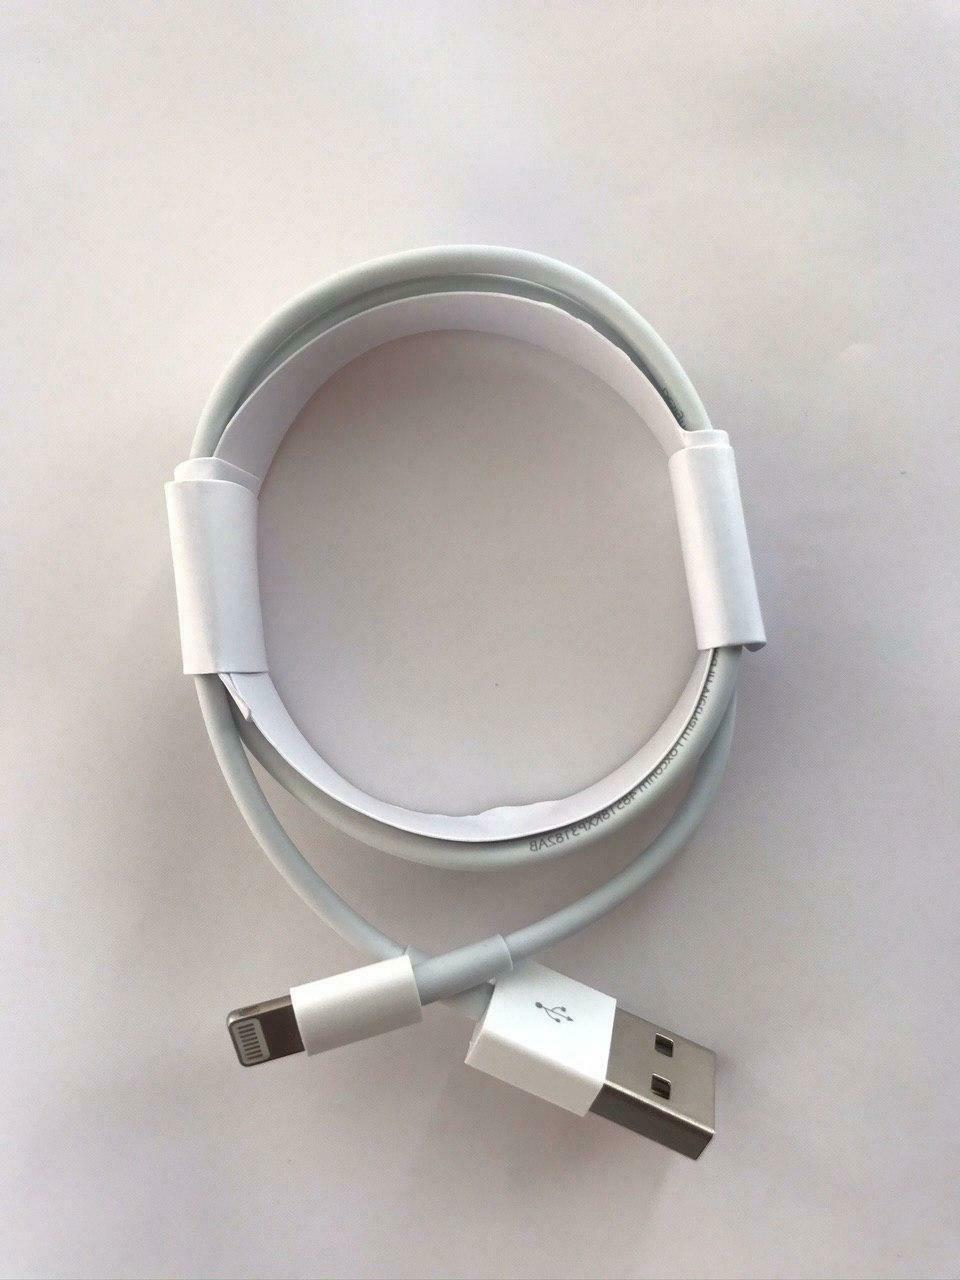 3FT Genuine iPhone 6S plus Lightning Cable Charger